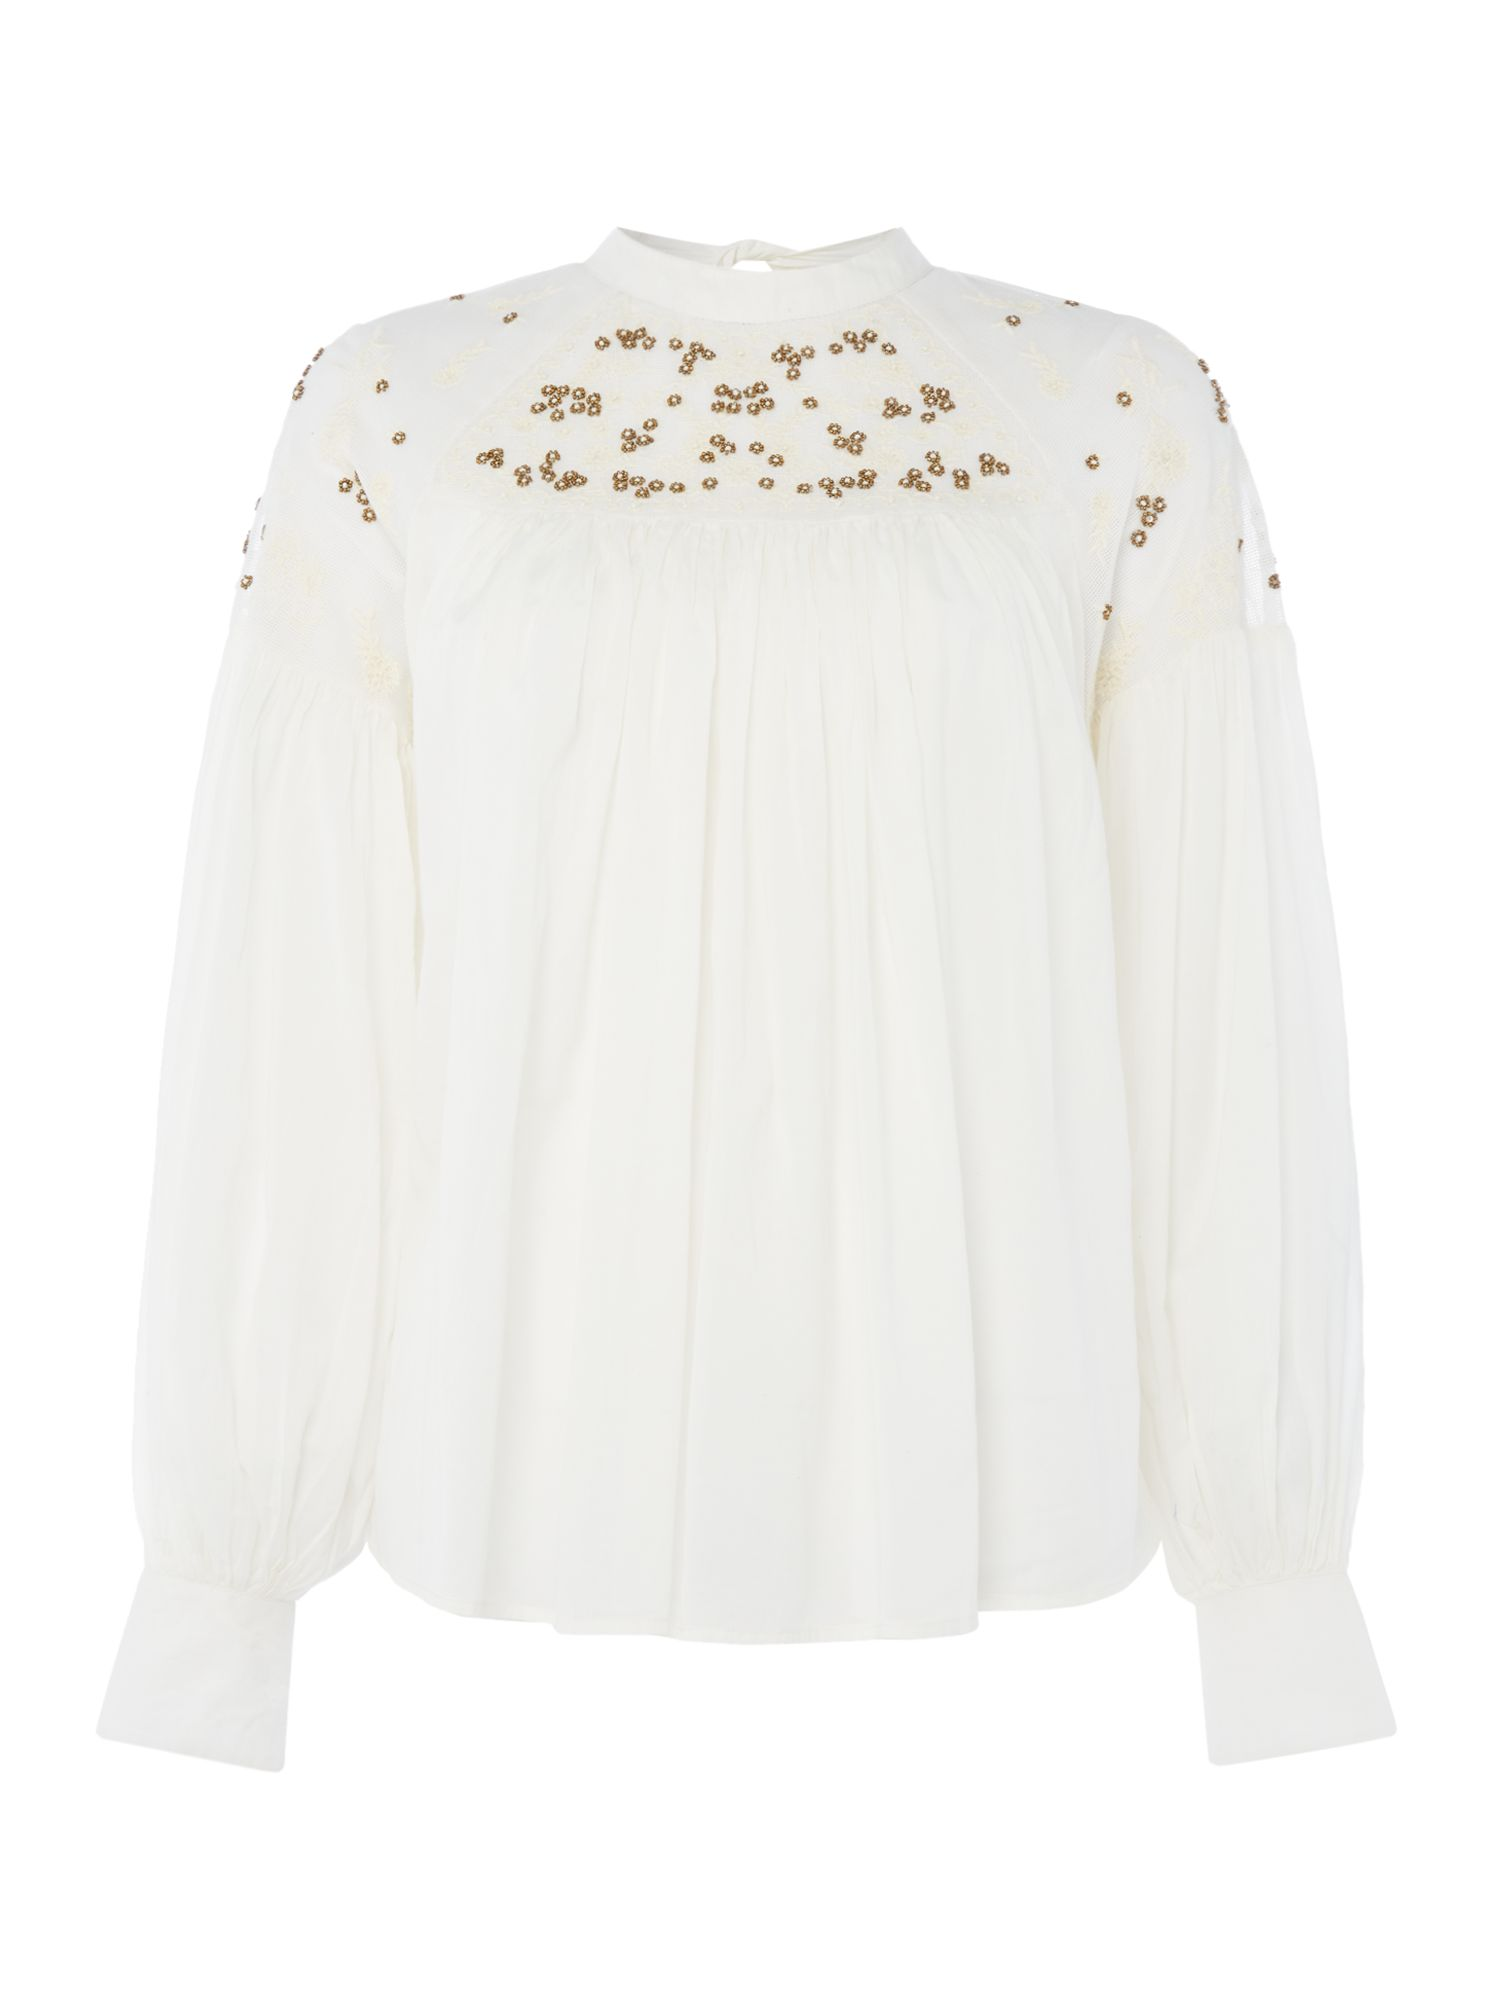 Free People Have It My Way Blouse With Embroidery, White